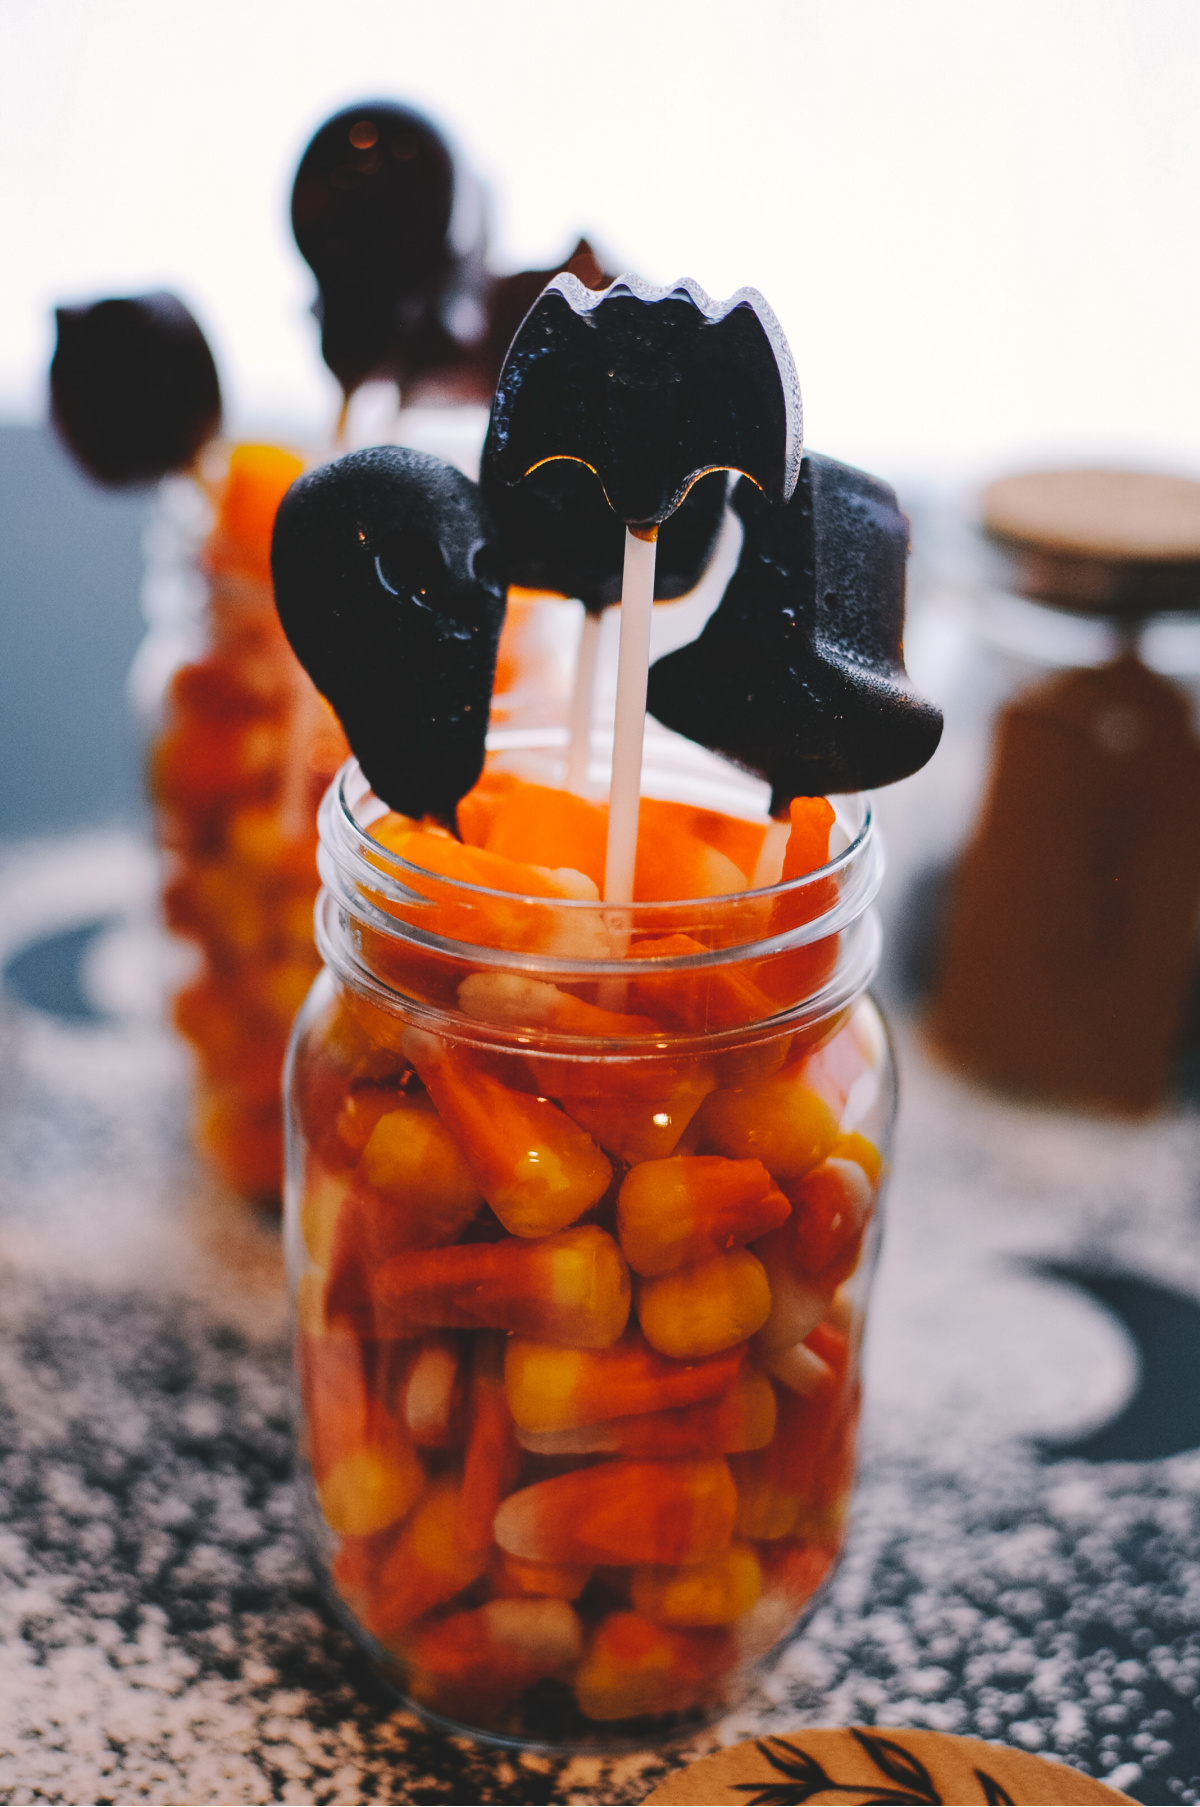 herbal lollipops in a jar with candy corn